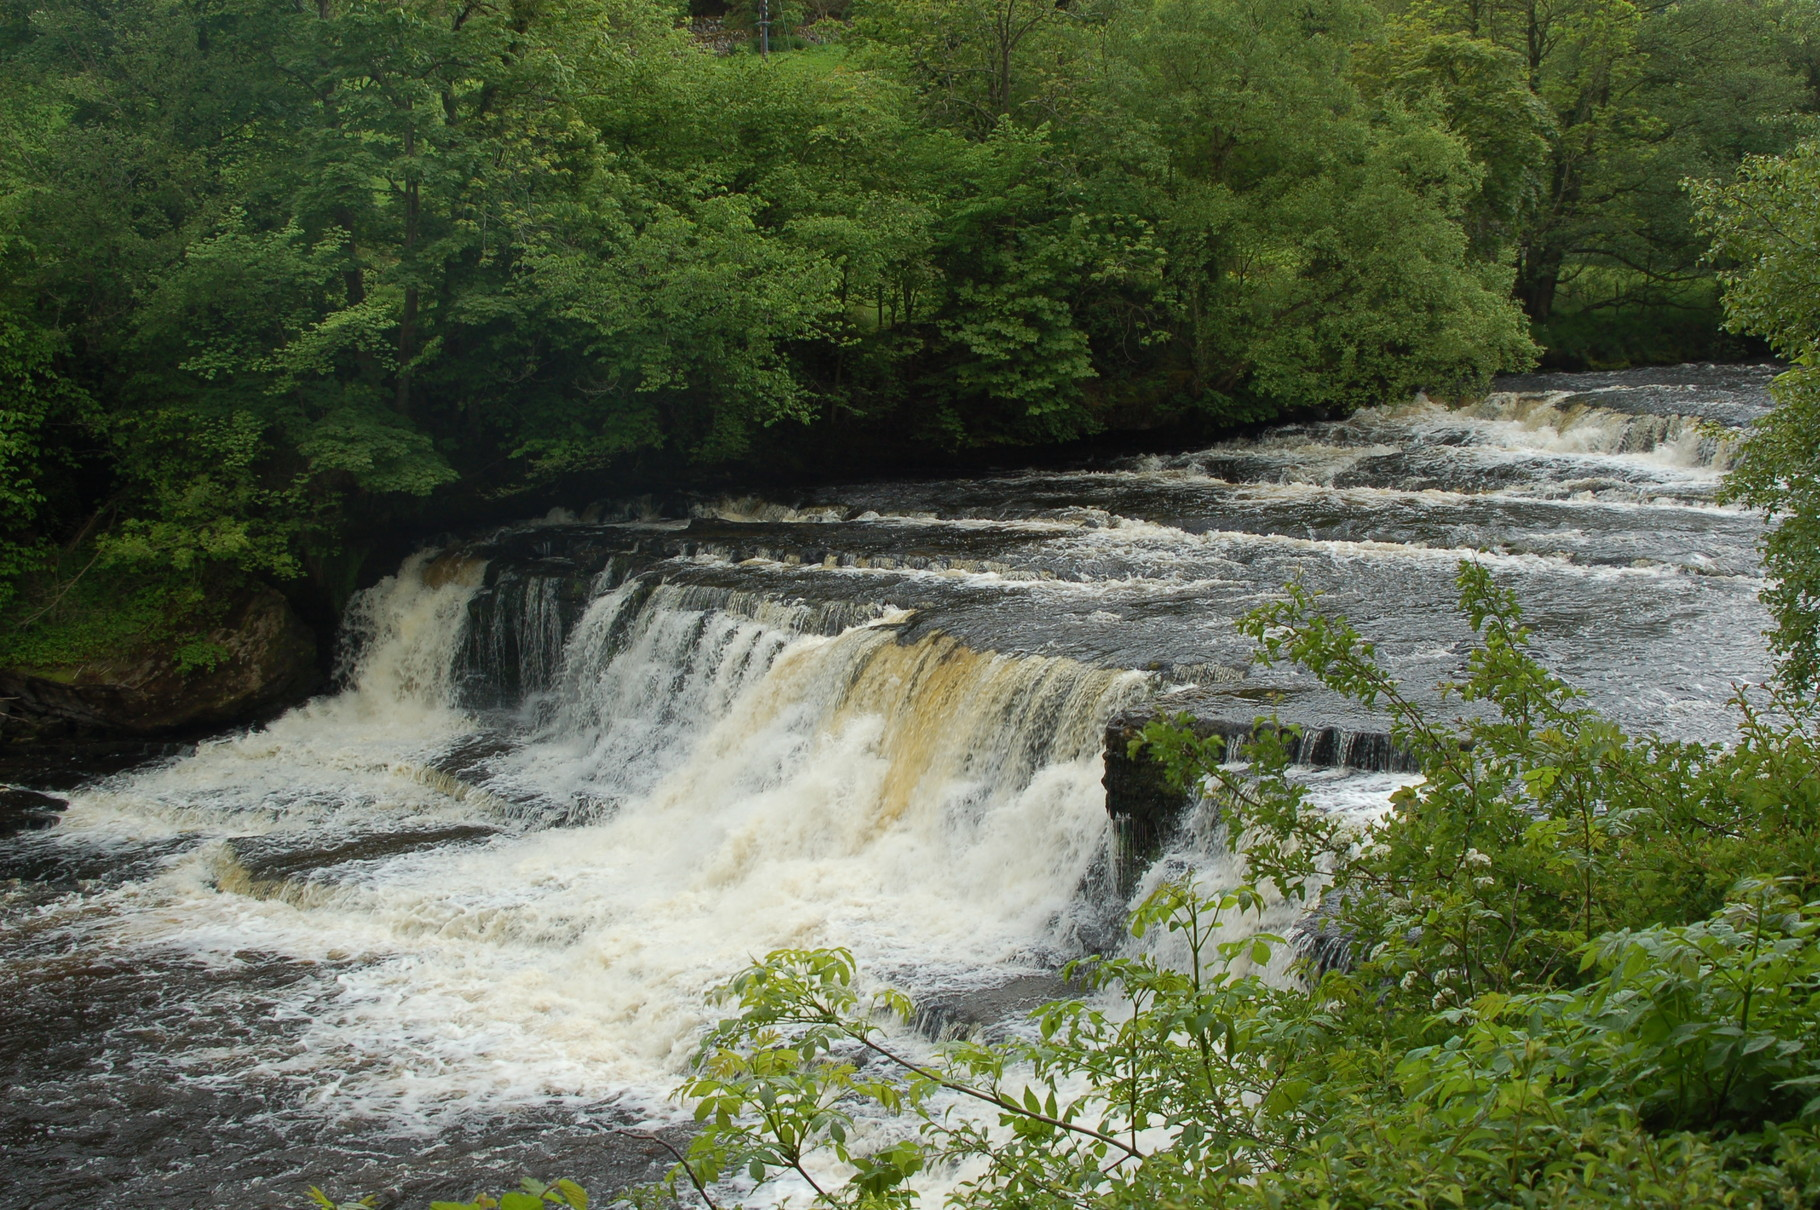 Yorkshire Dales, Aysgarth Middle Falls